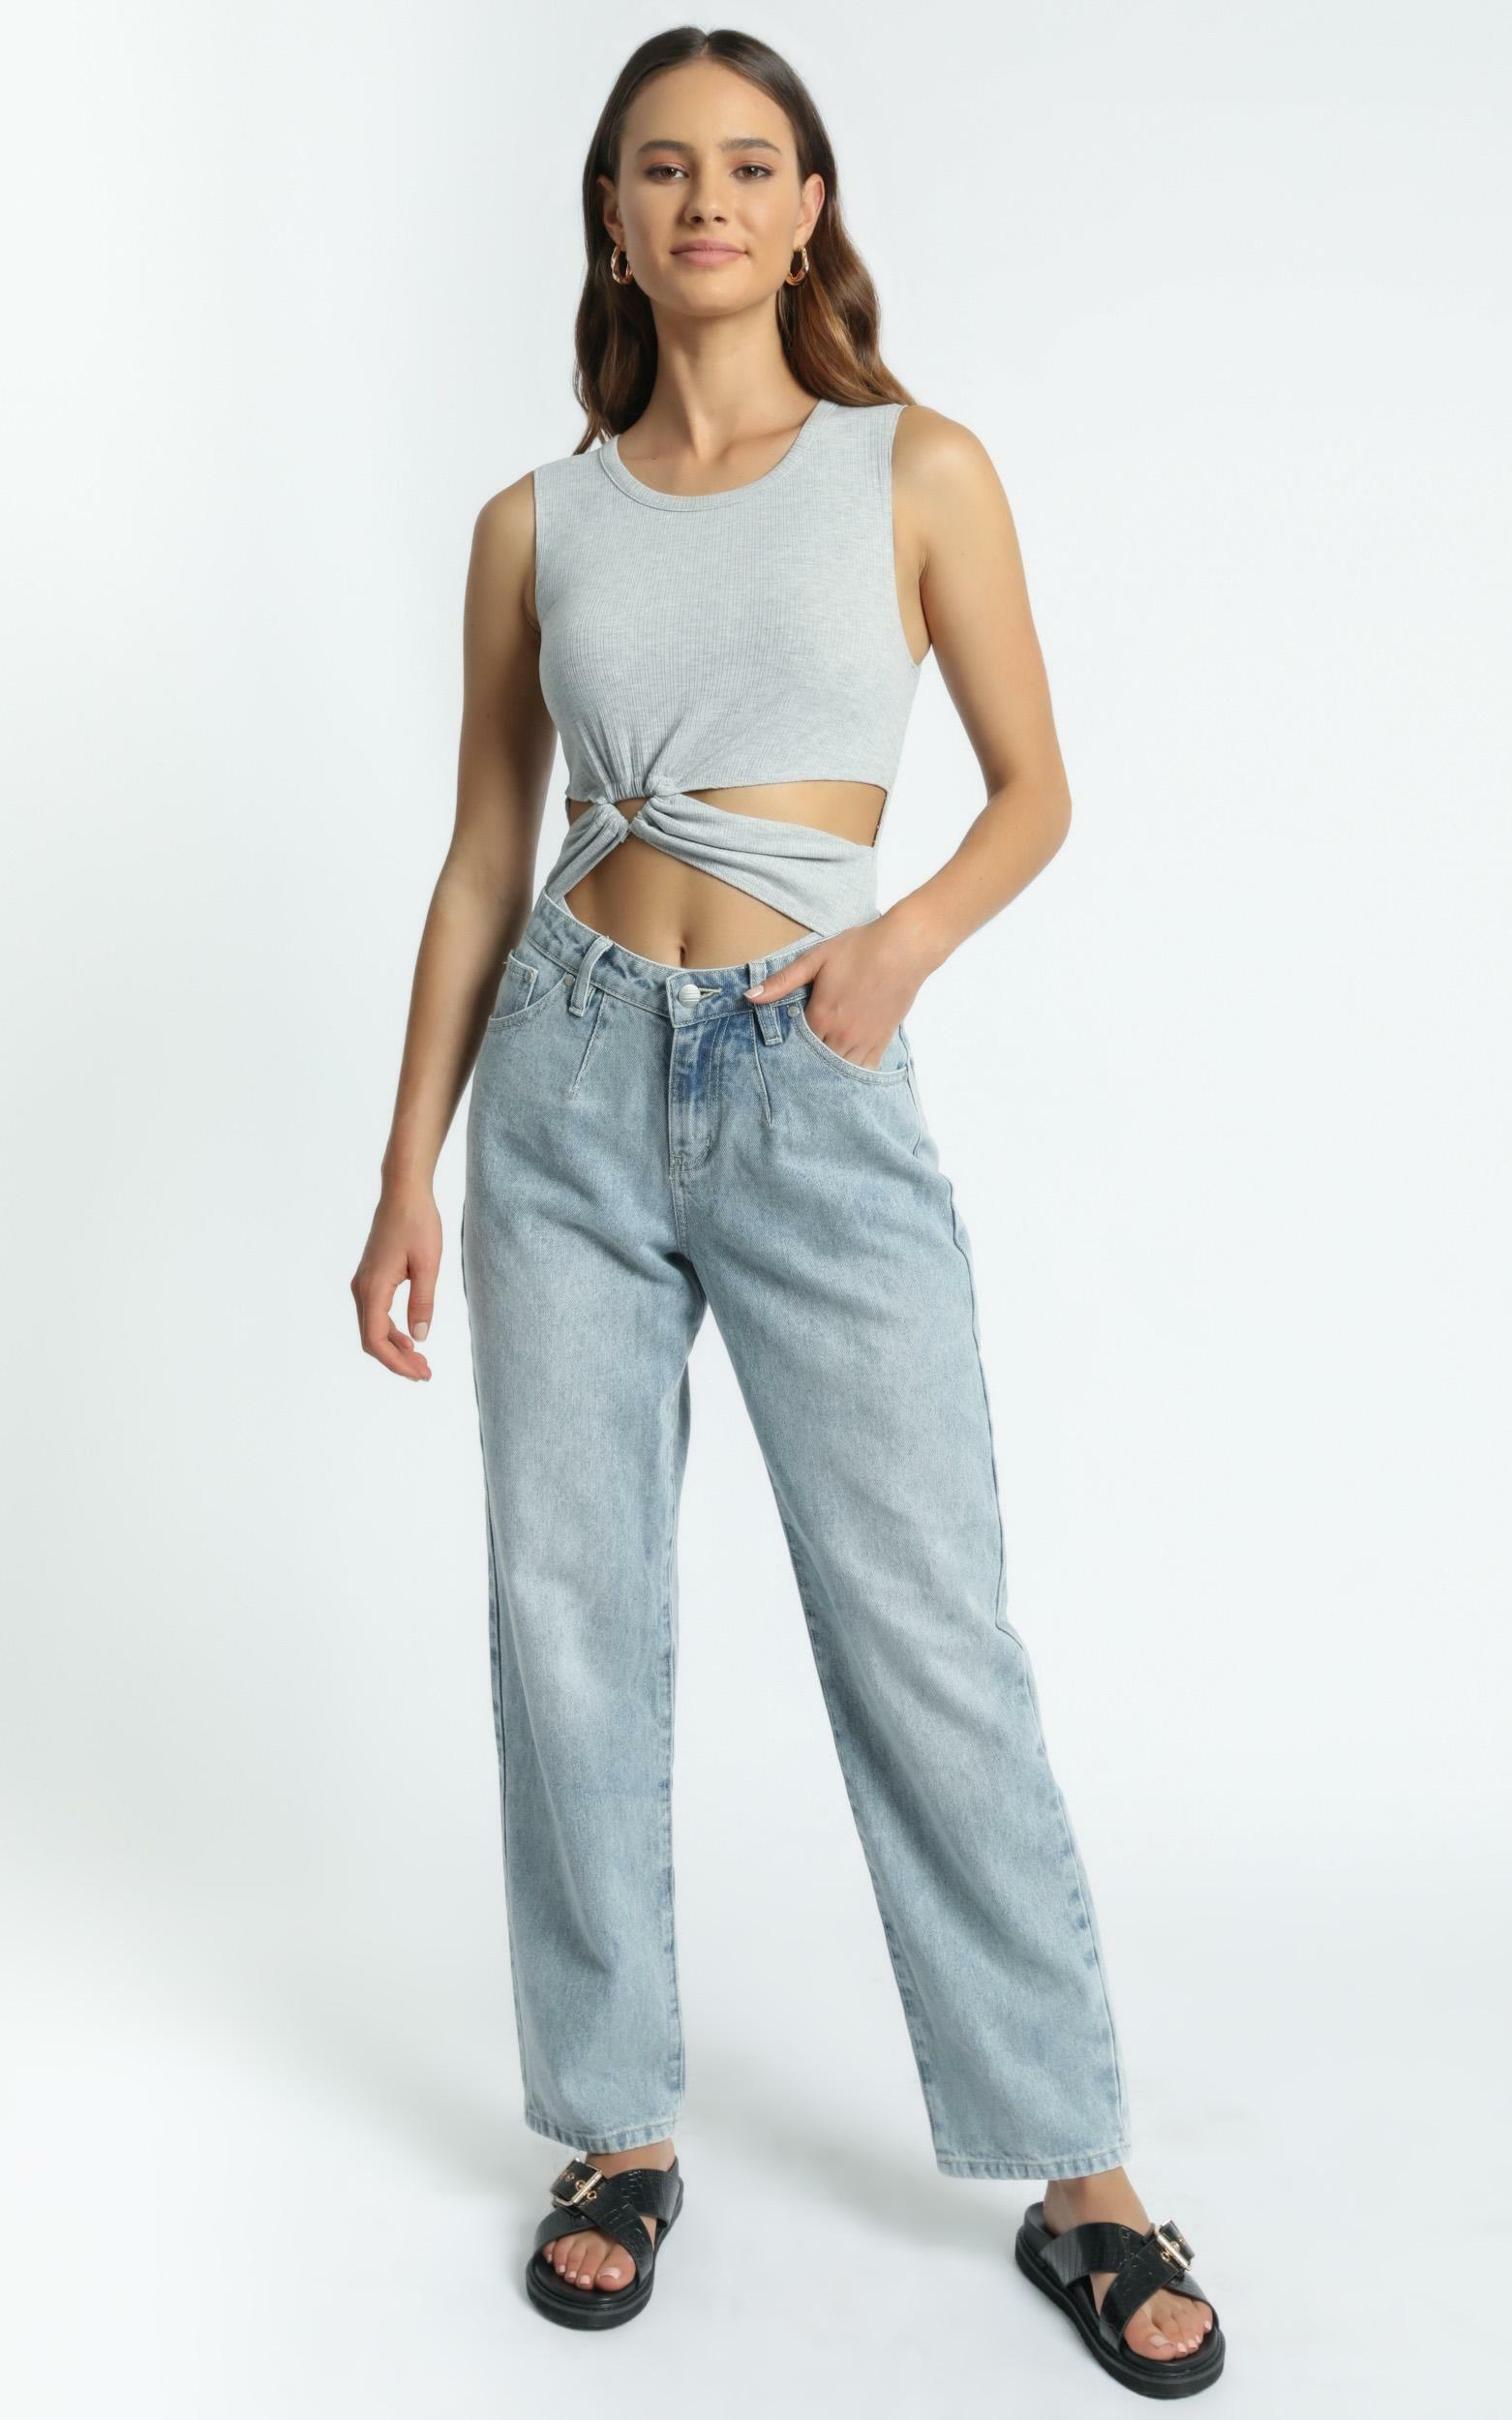 Twiin - Calling Bodysuit in Light Grey - XS, GRY3, hi-res image number null